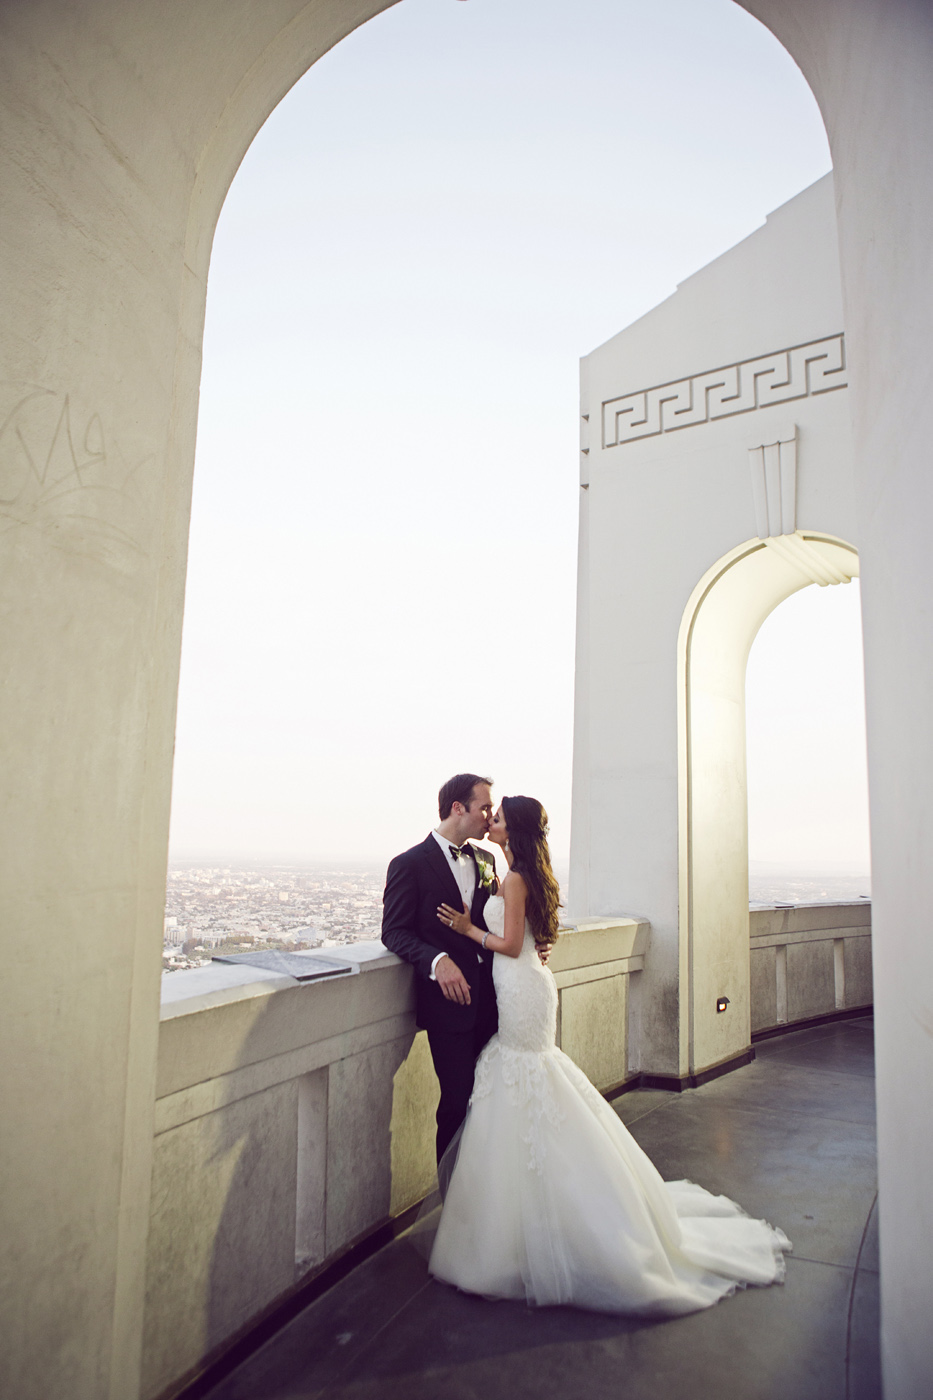 046DukePhotography_DukeImages_weddings_losangeles.jpg